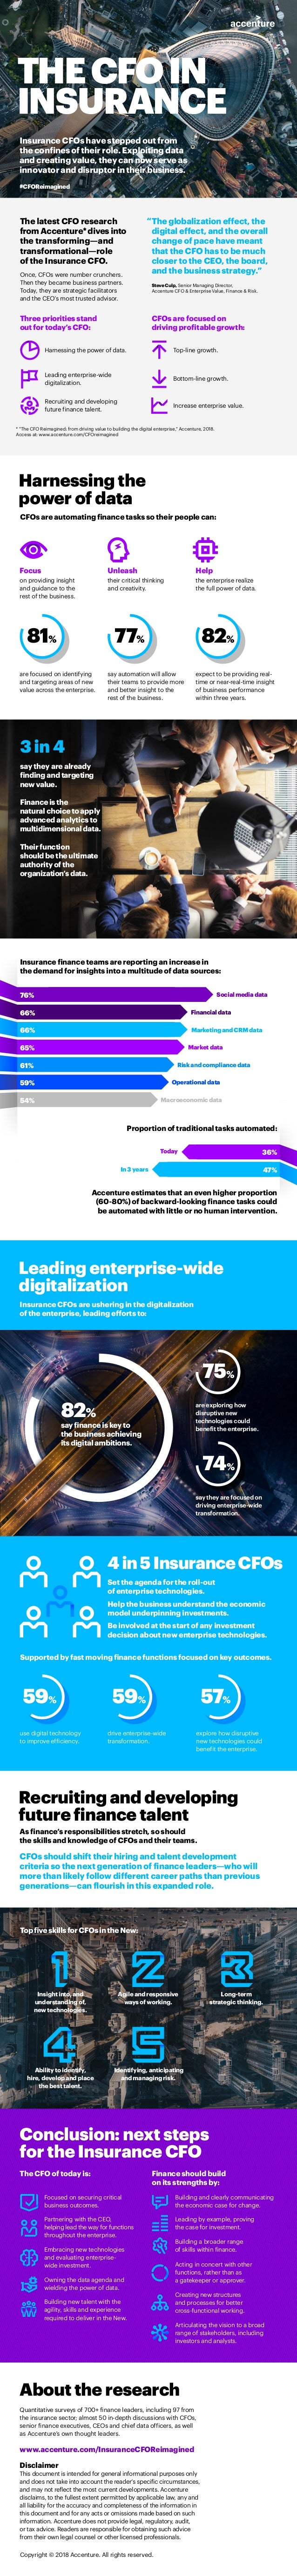 say finance is key to the business achieving its digital ambitions. 82% 81% 77% 82% Today In 3 years 59% 57% explore how d...